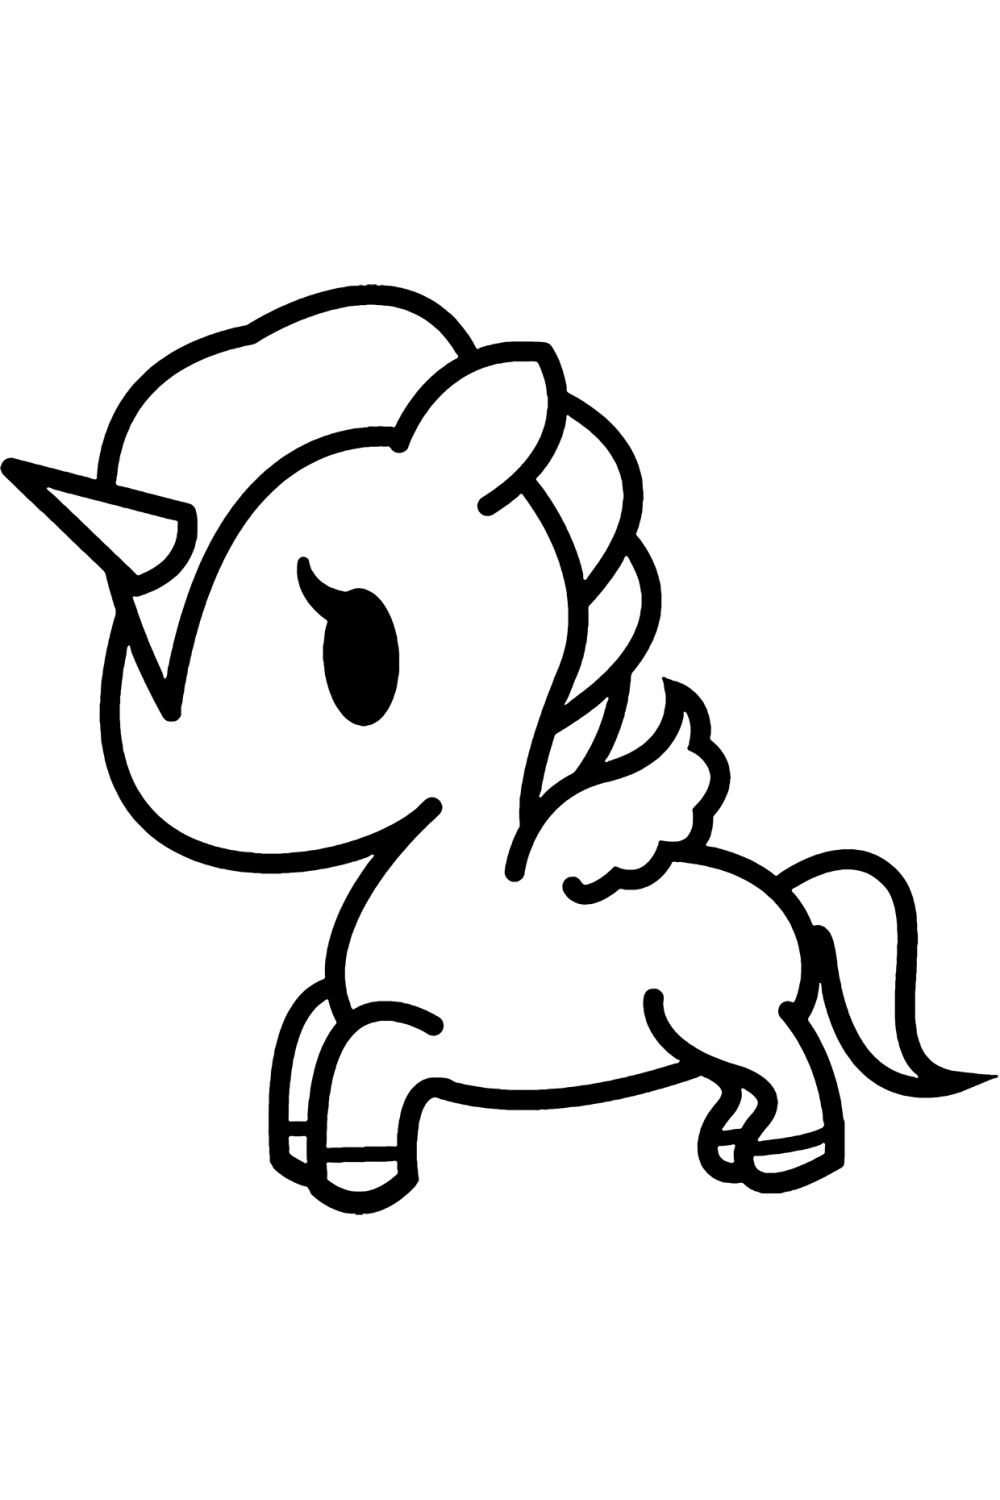 printable cute unicorn coloring pages 35 cute unicorn coloring pages for kids free printable unicorn coloring printable pages cute